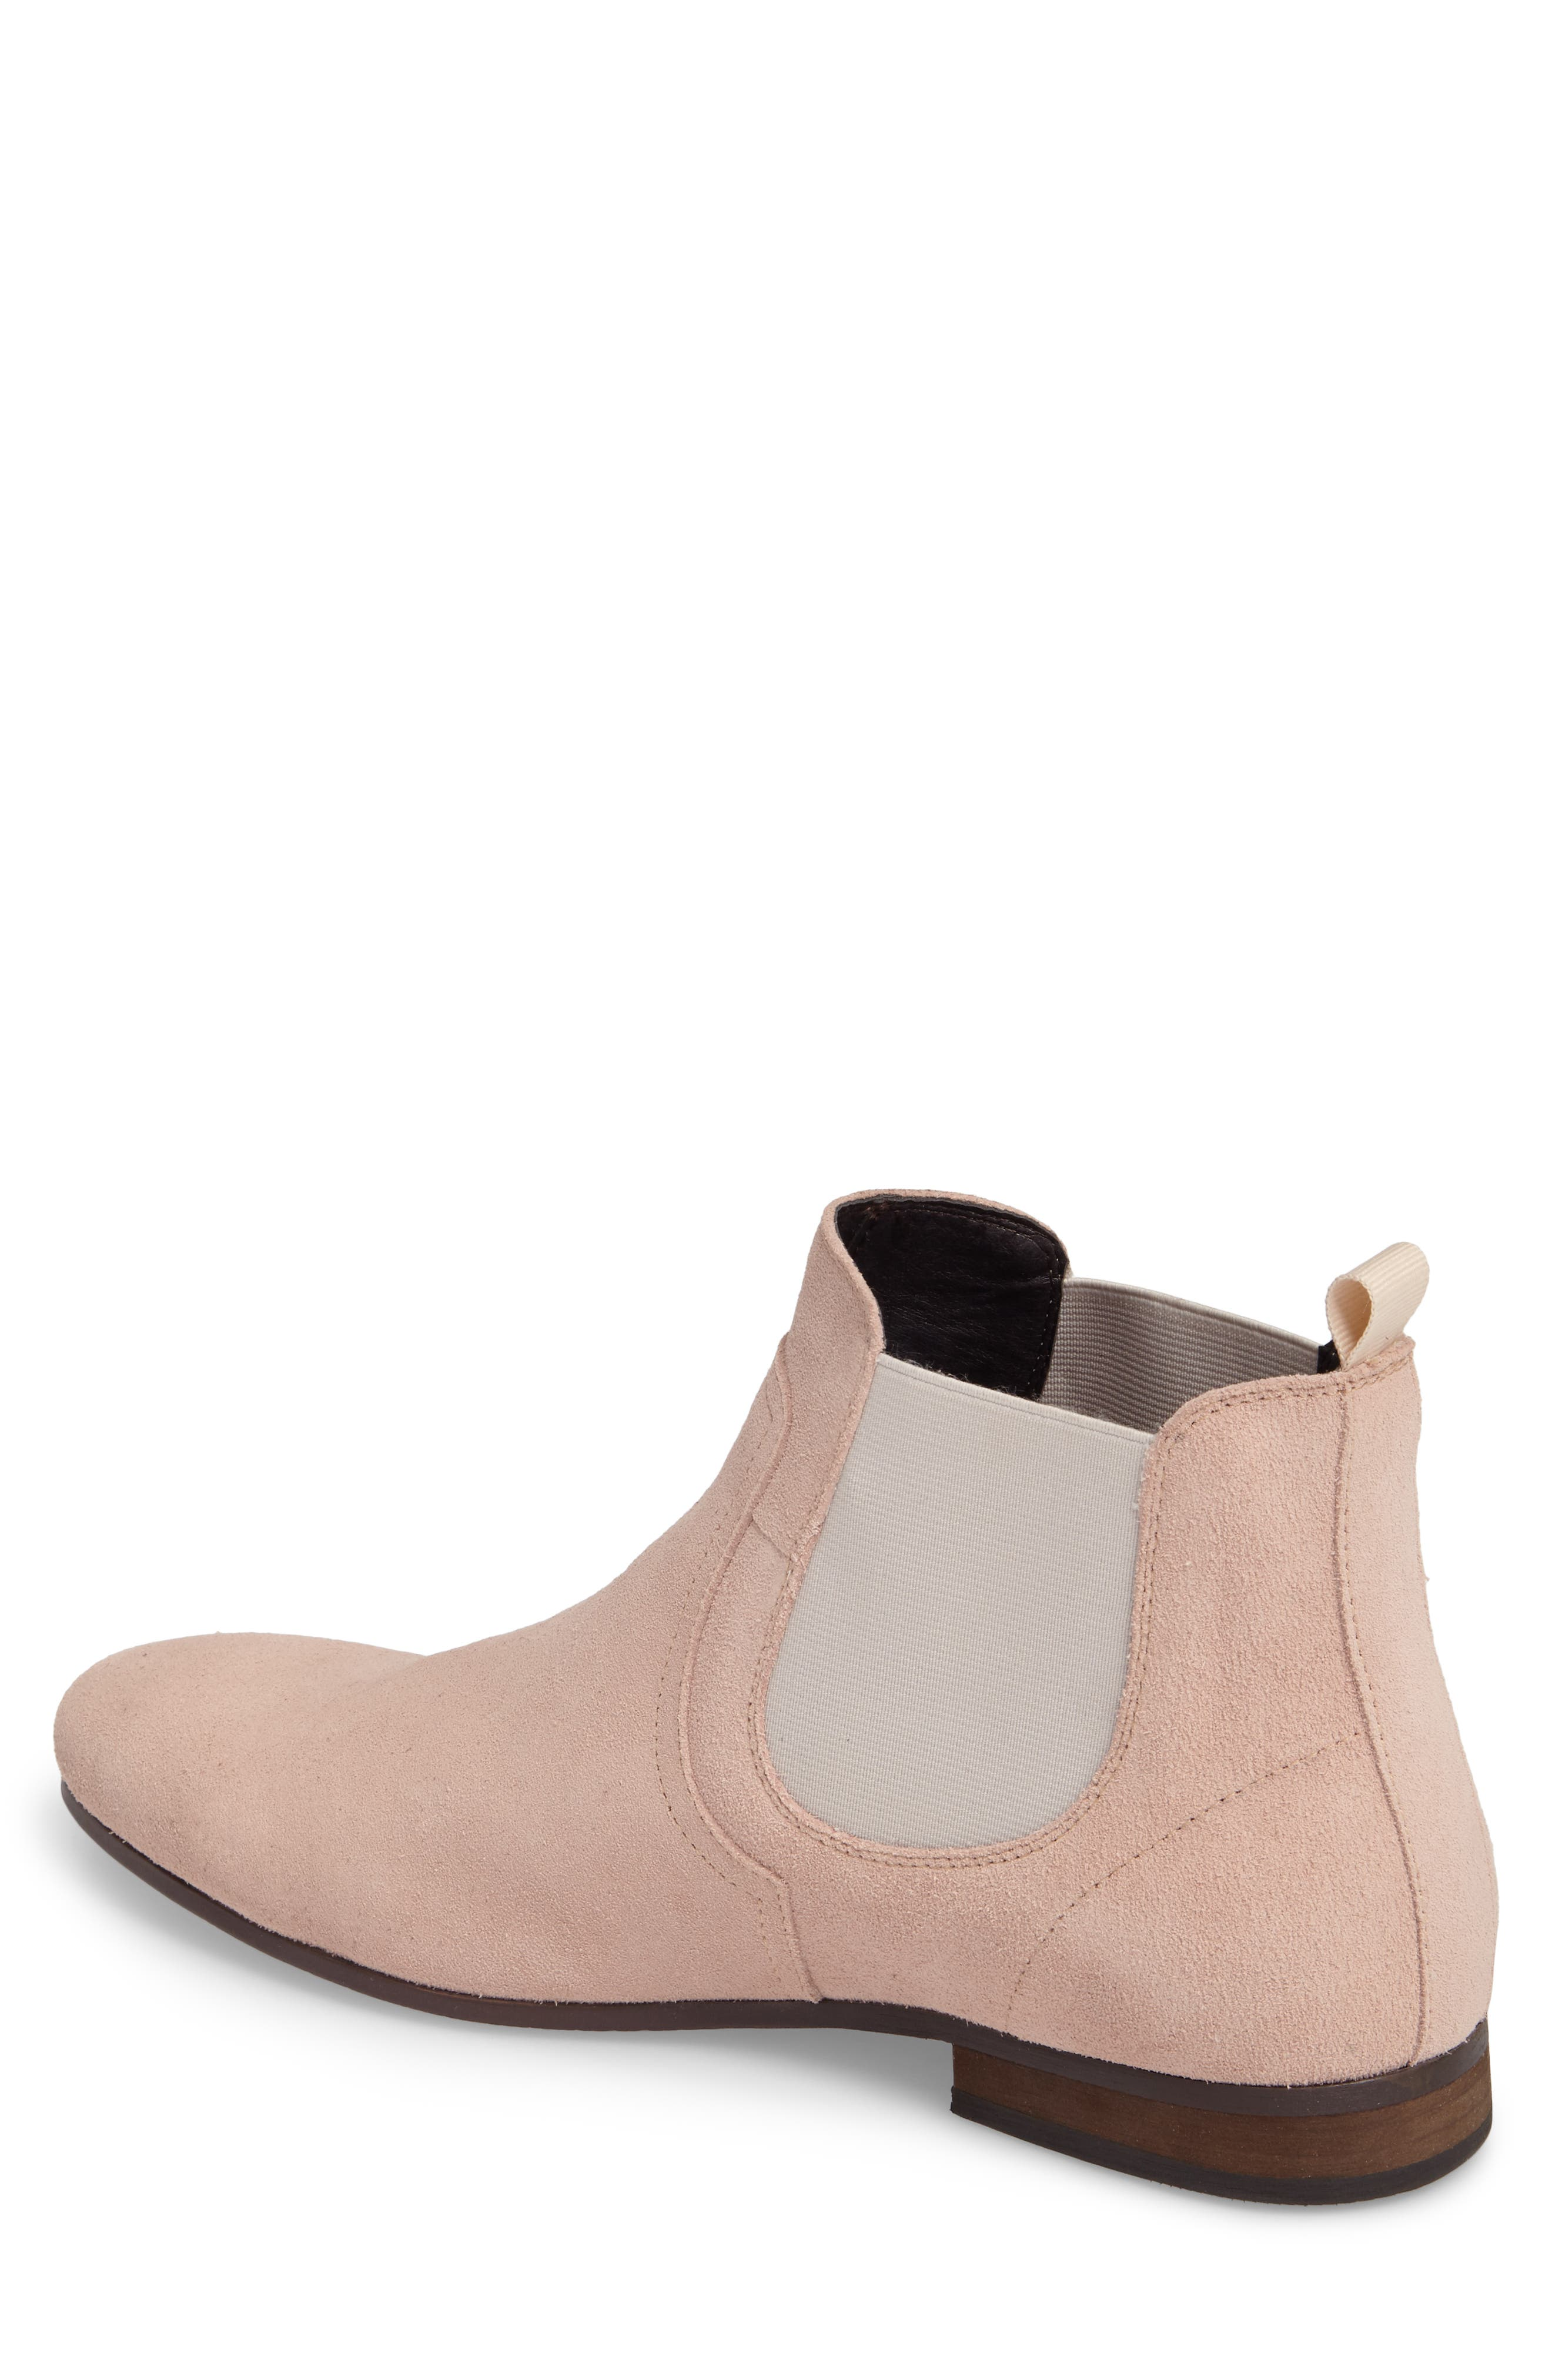 Brysen Chelsea Boot,                             Alternate thumbnail 30, color,